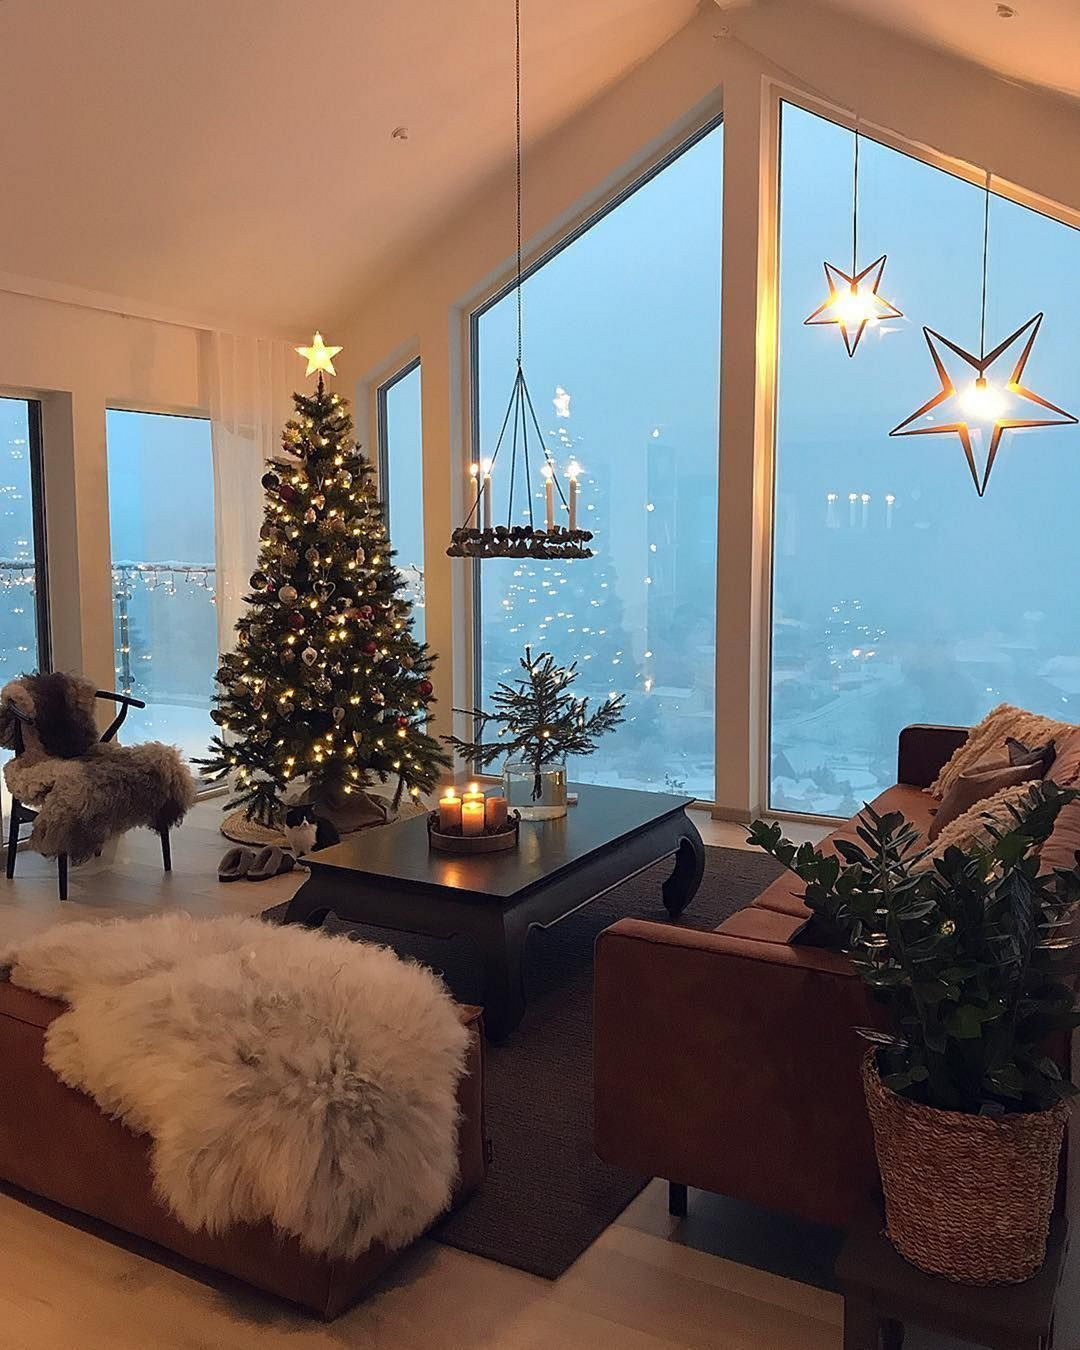 12 Awesome Winter Decoration Ideas You Have to Try at Your Home Ease to lose your Christmas decorations after the holidays with these DIY winter decorating ideas. Make every room in your home including your terrace feel warm, comfortable and inviting, so you wi\u2026 #home